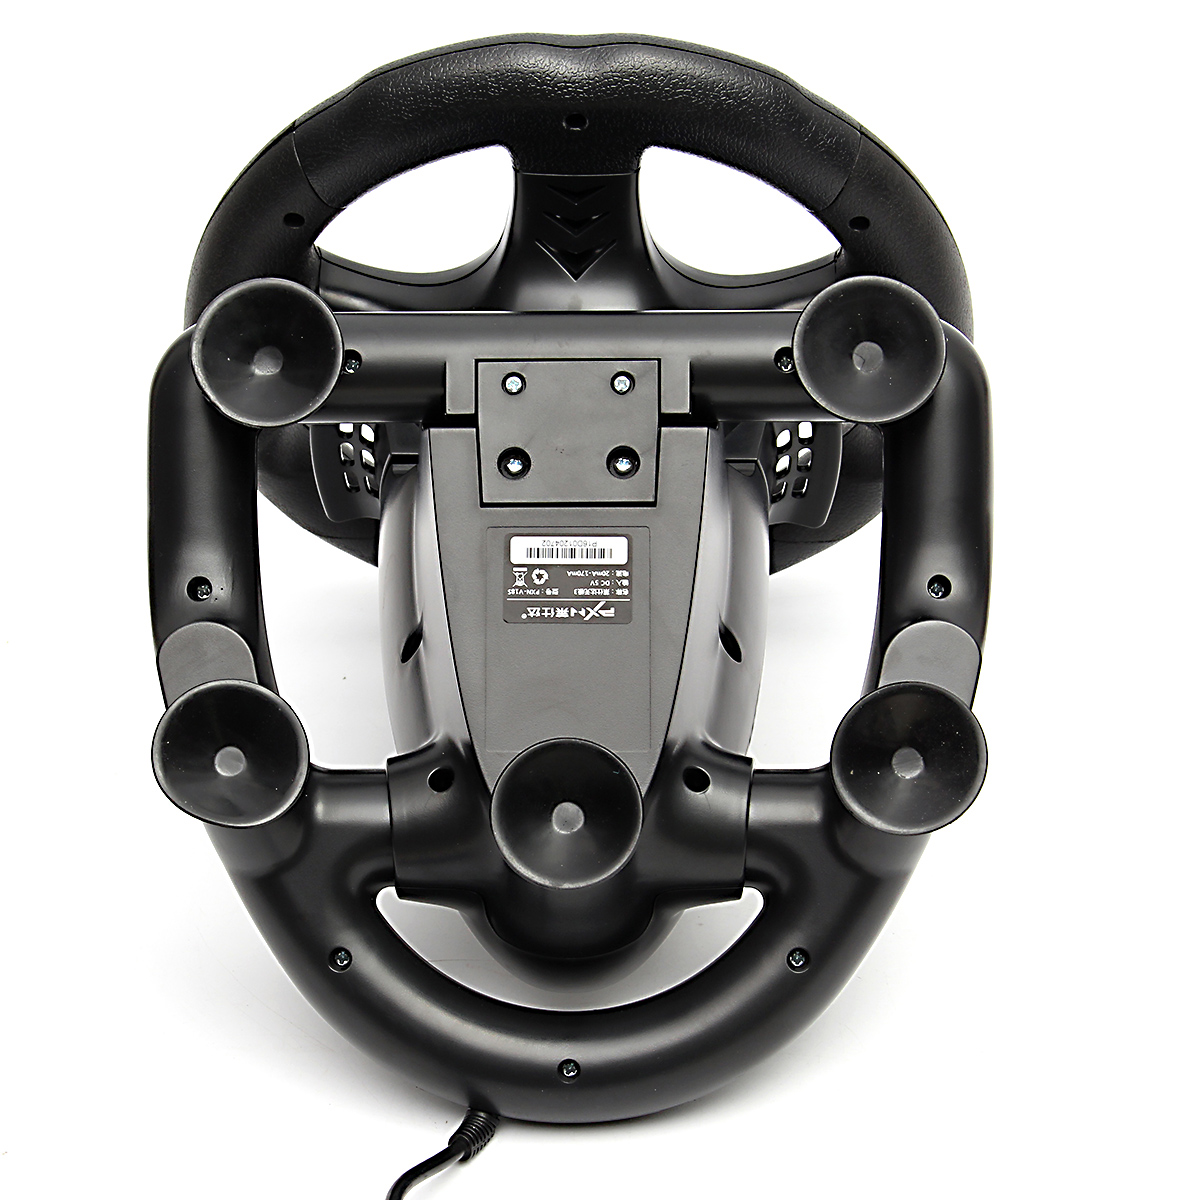 PXN-V18S Illusiveness Computer Card USB Wired Vibration Motor Racing Game Steel Ring Wheel For PC Game